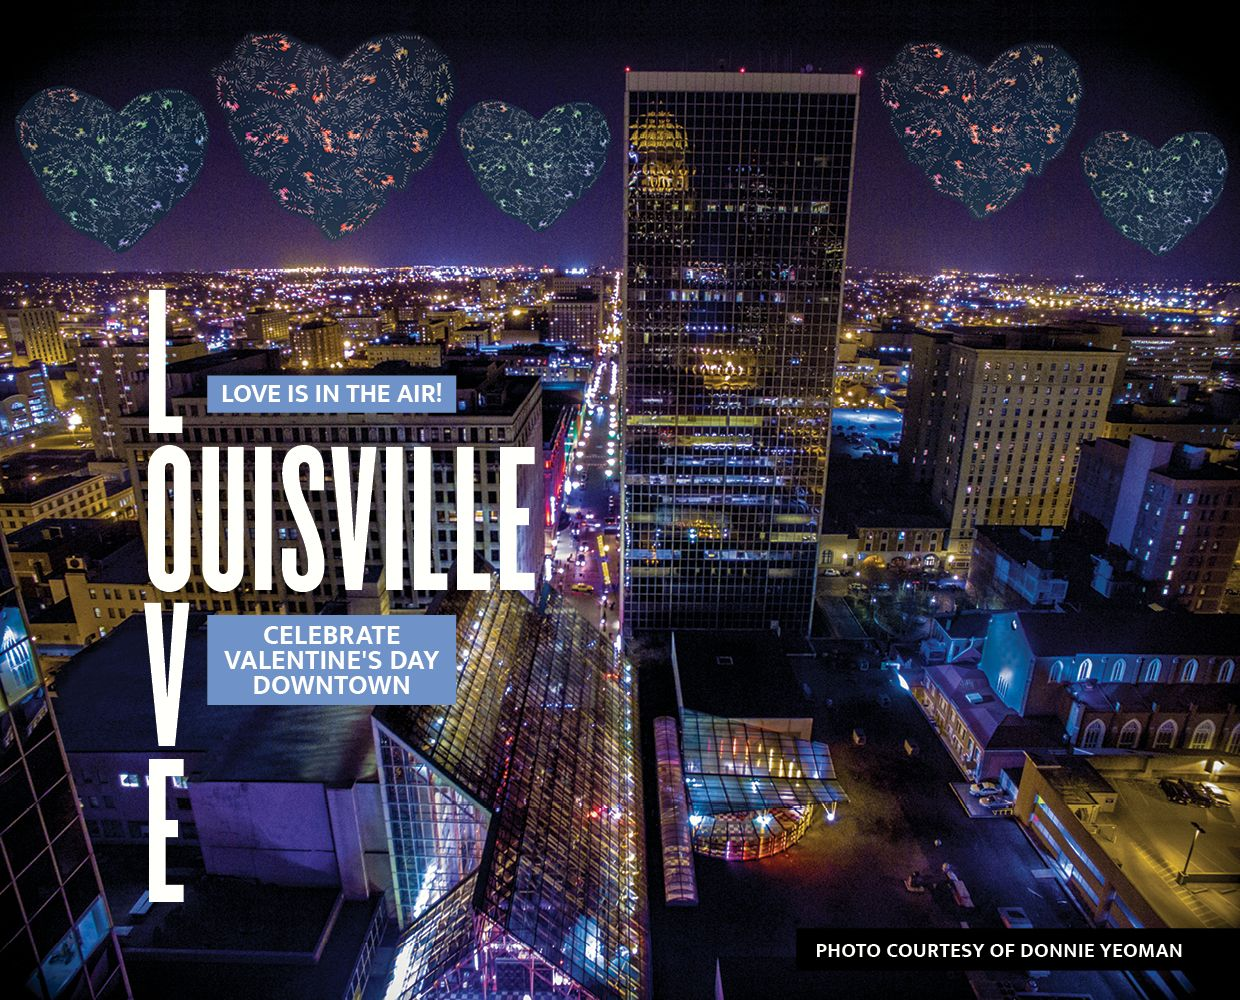 February 10 - 14 - Valentine's Day in Downtown Louisville image